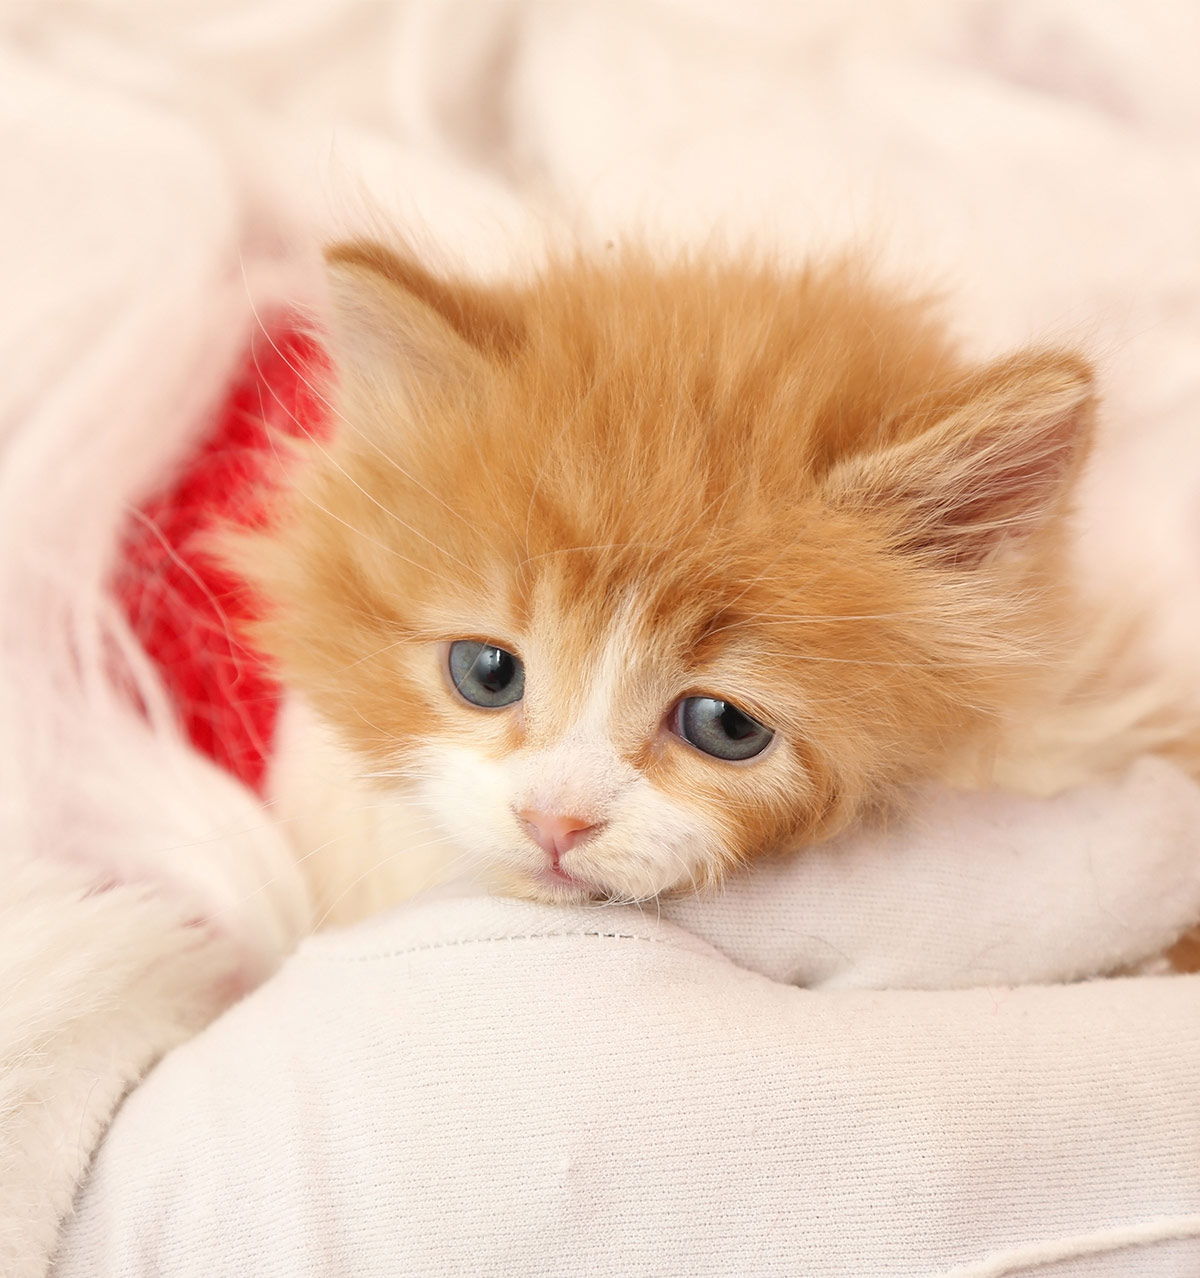 Kitten Names Adorable Awesome And Unusual Ideas For Naming Your Cat